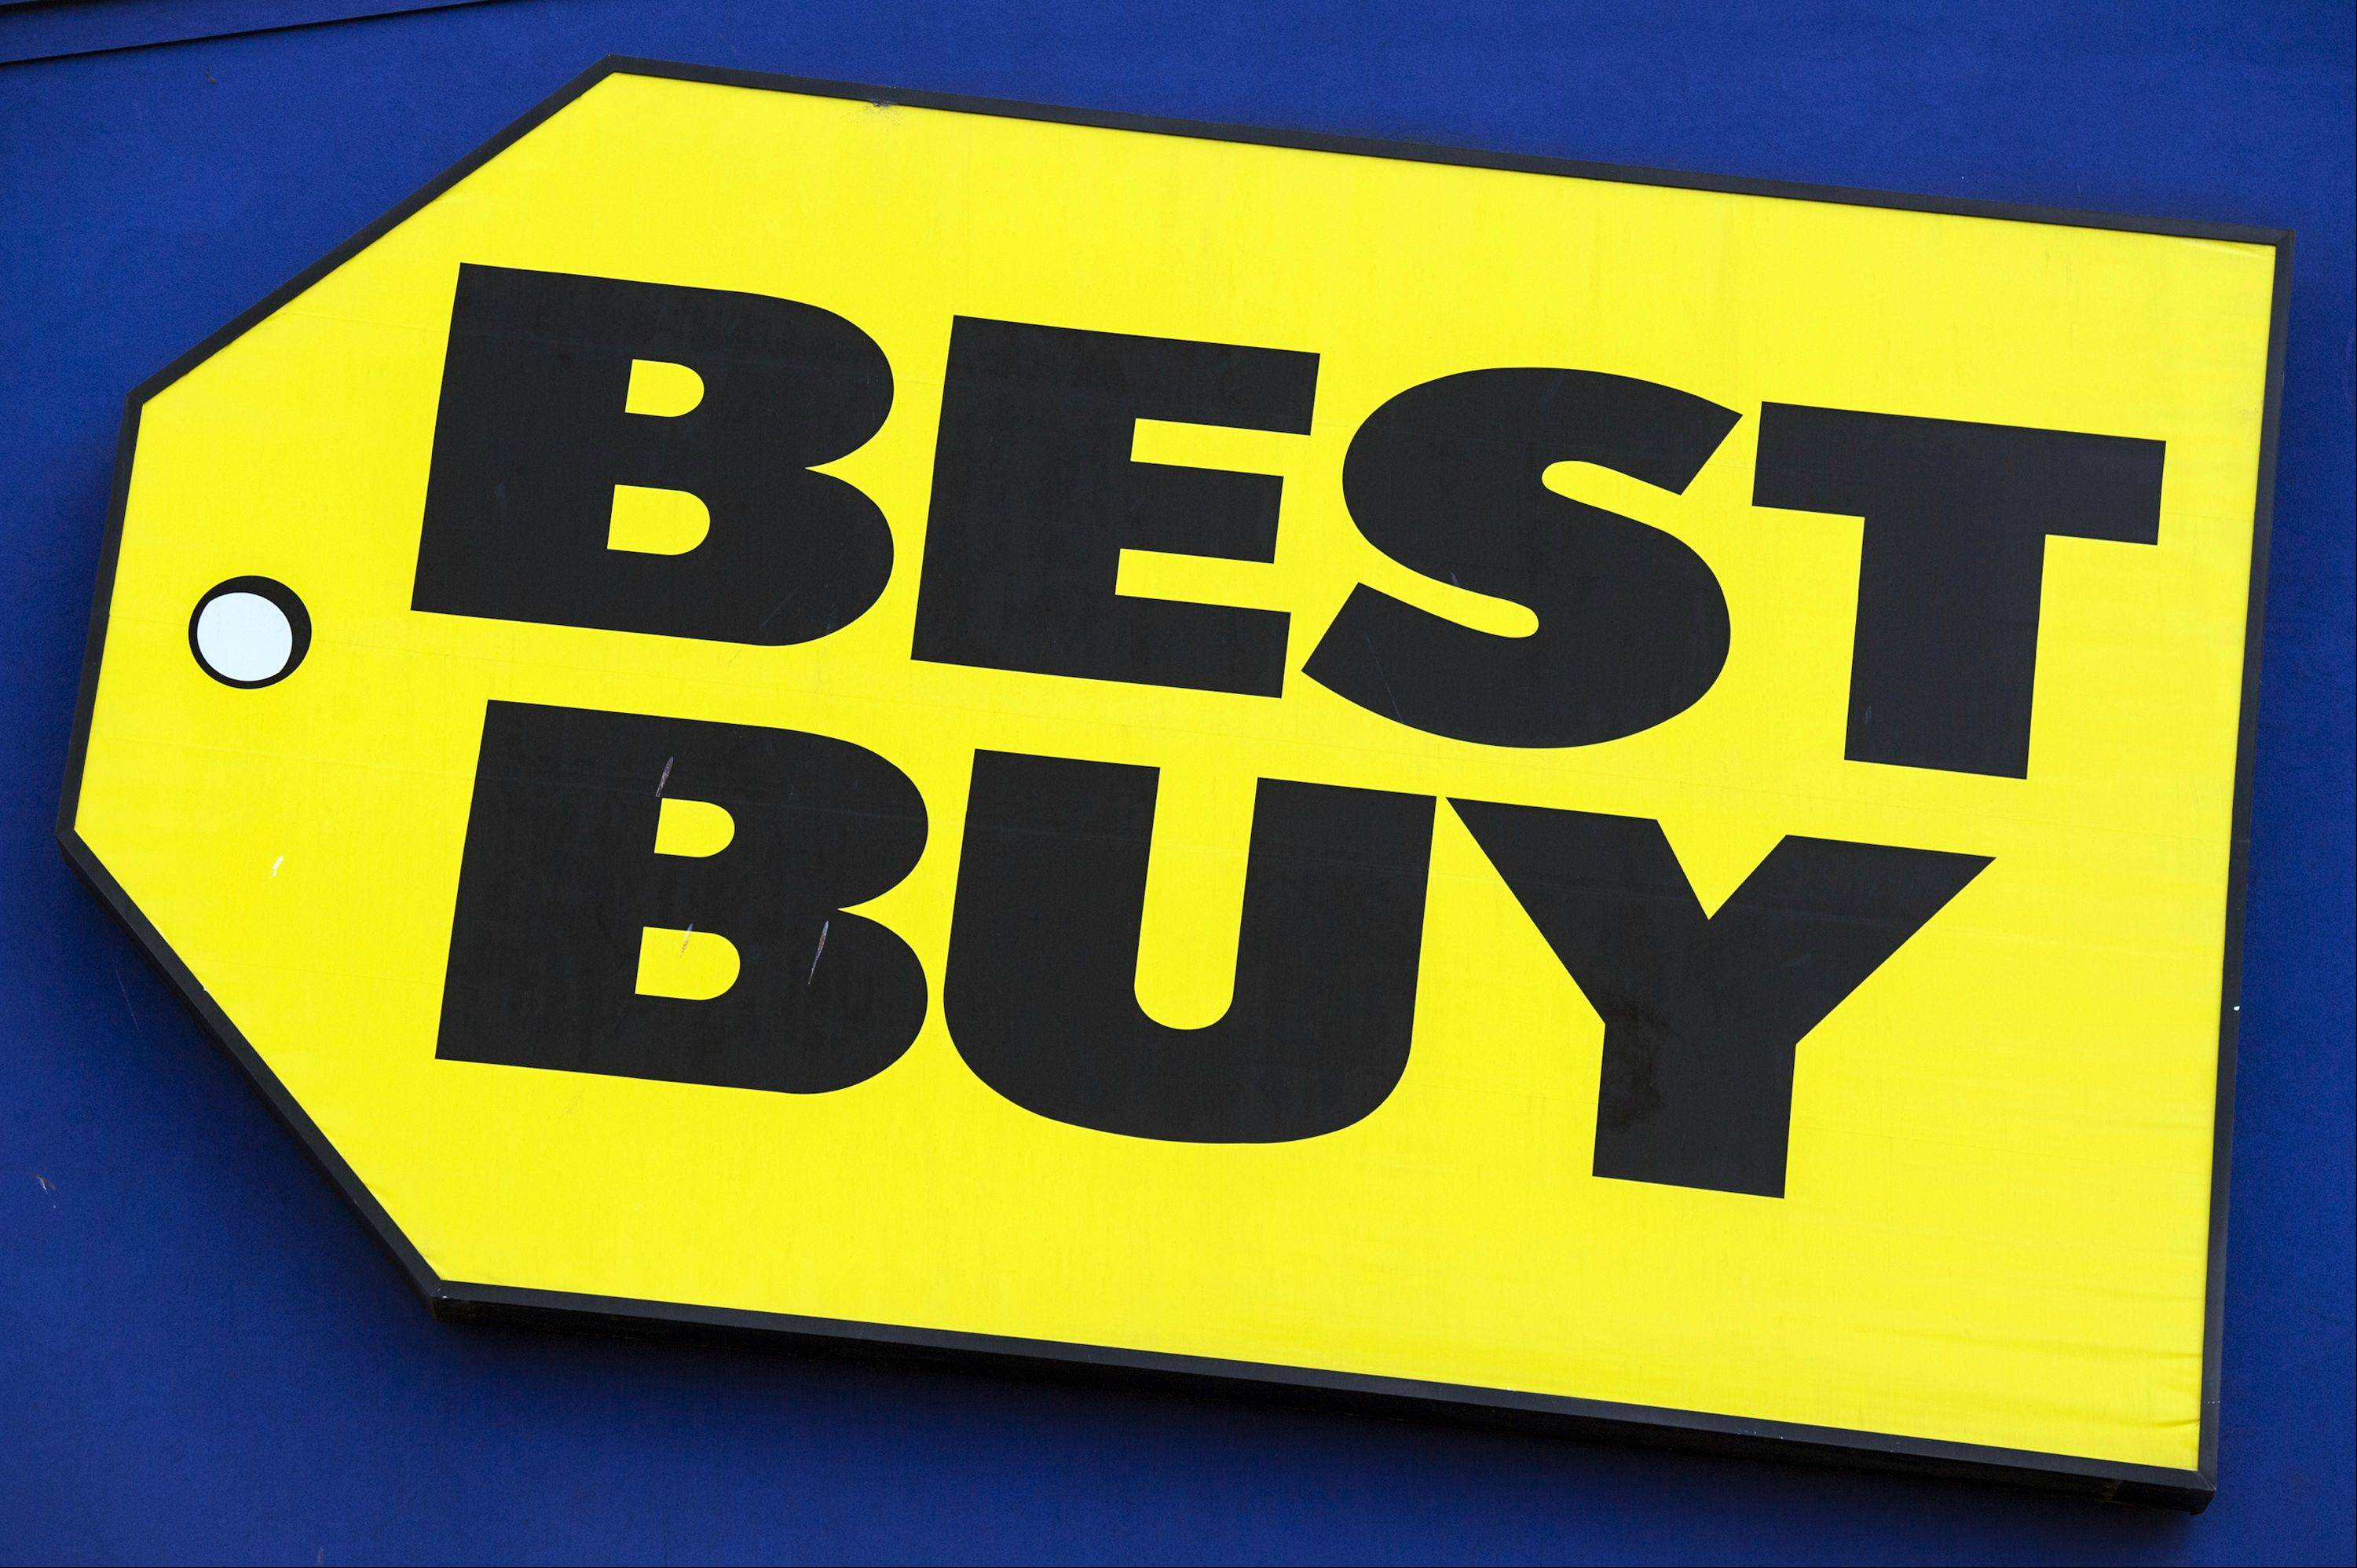 Best Buy said Thursday it will create store-within-store kiosks for Samsung products -- a vote of confidence from a major consumer electronics retailer that the brick-and-mortar format is still an important way to sell products.